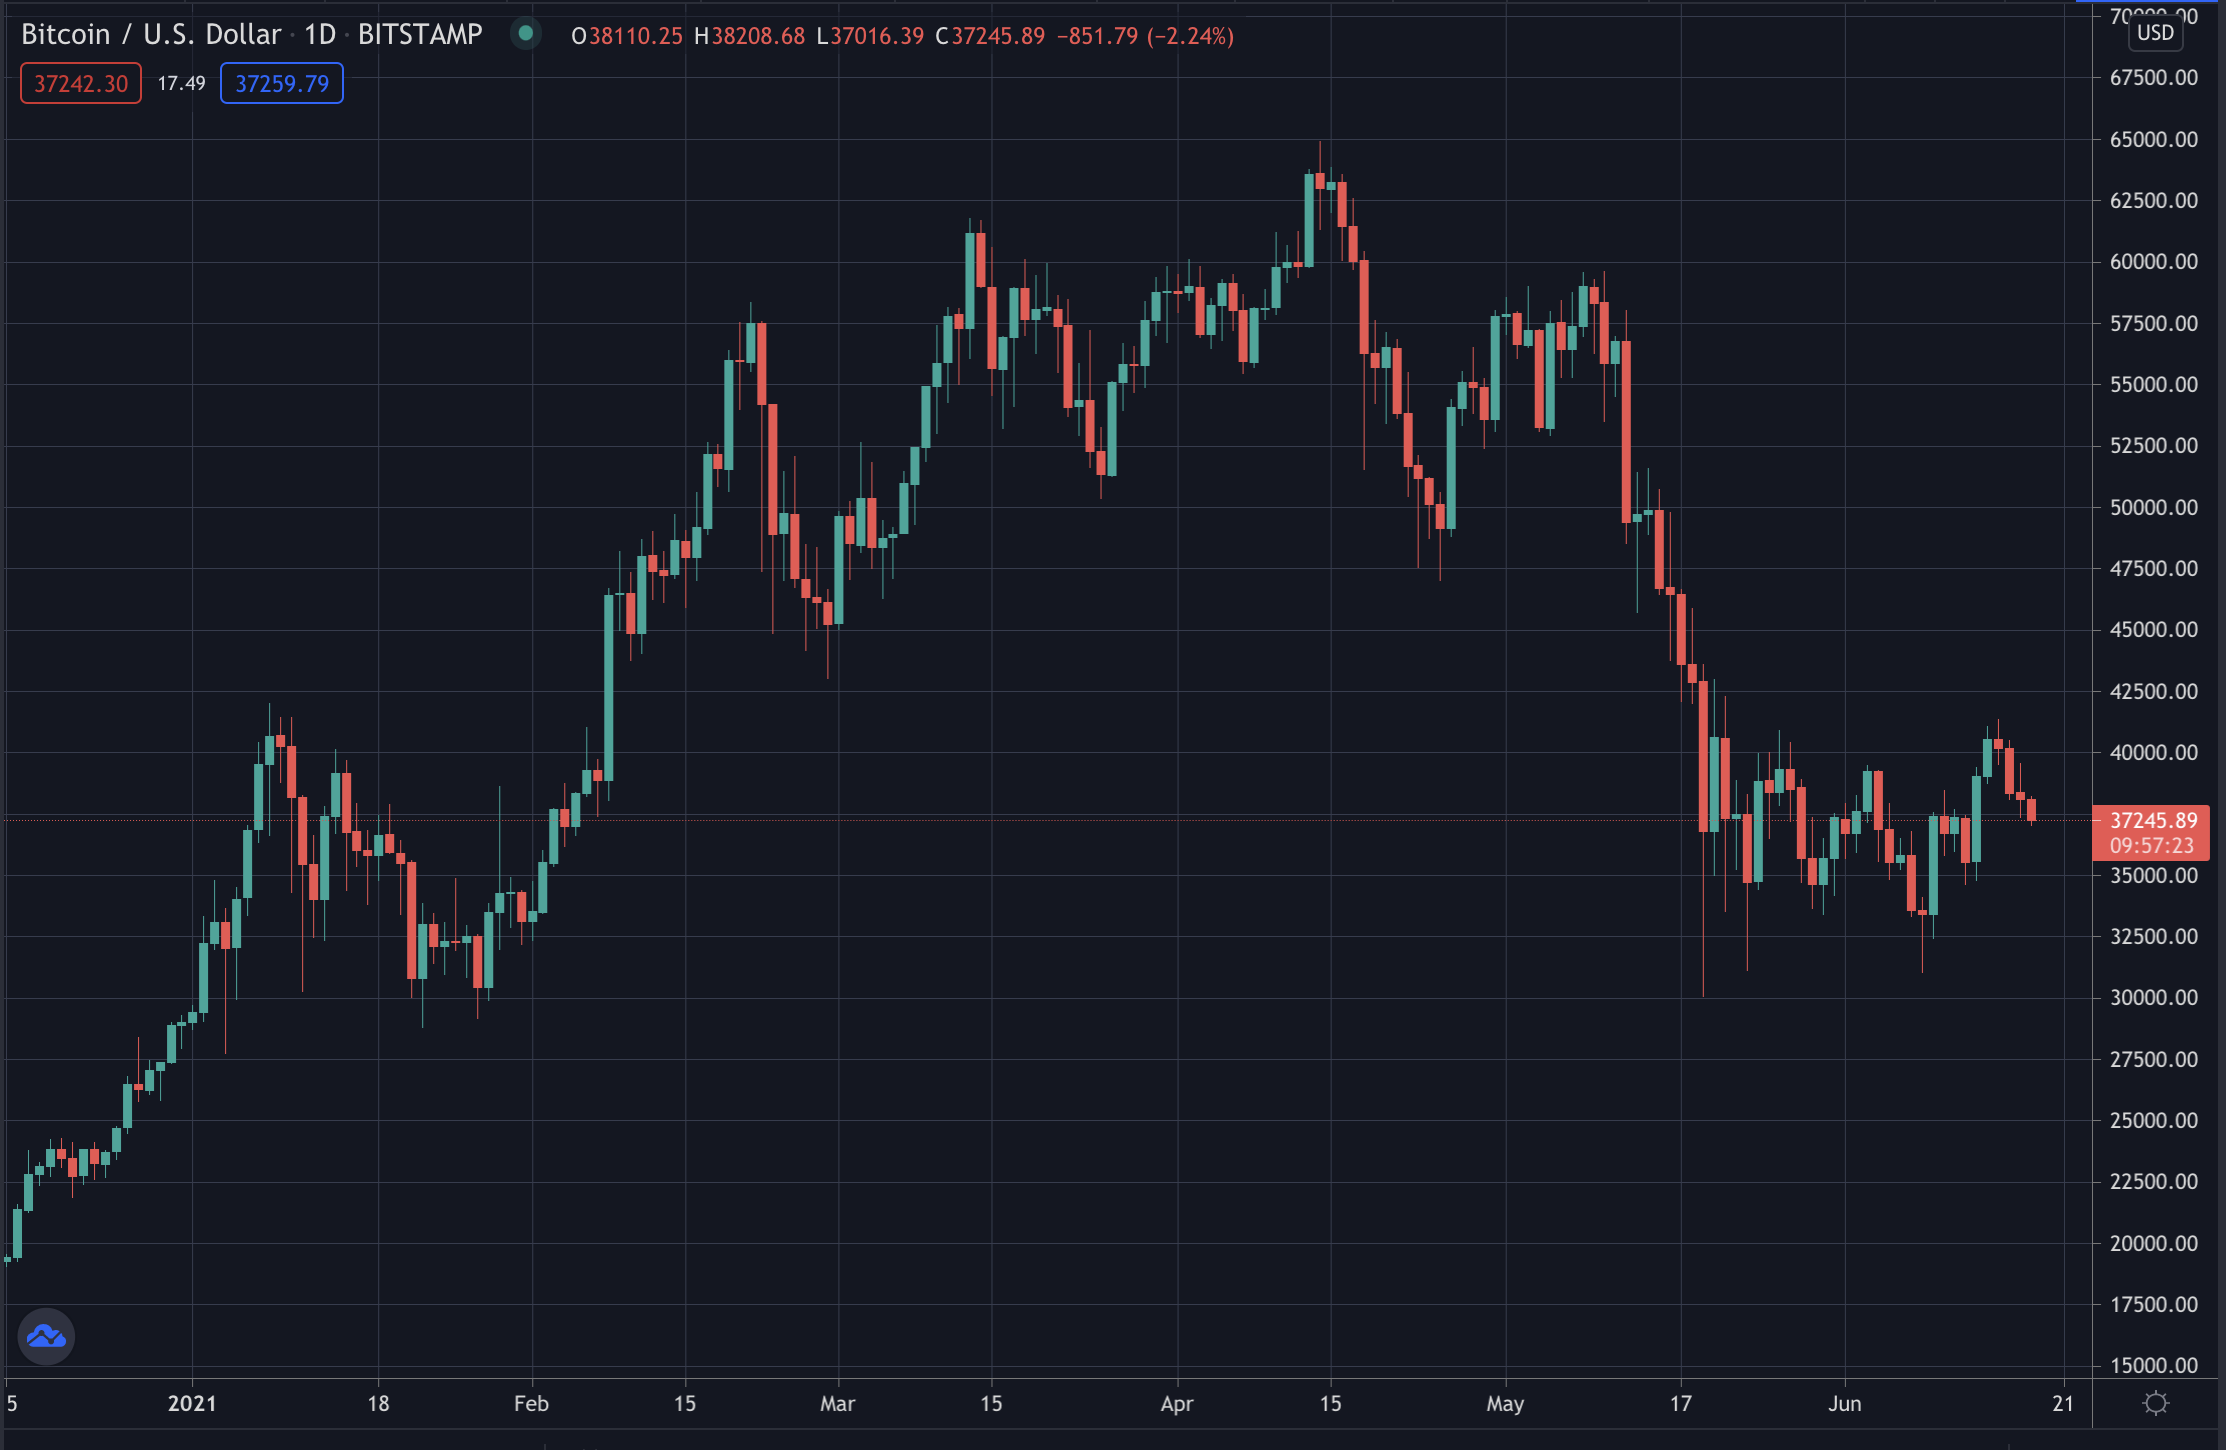 Bitcoin's price on daily candles with chart from Tradingview, June 2021